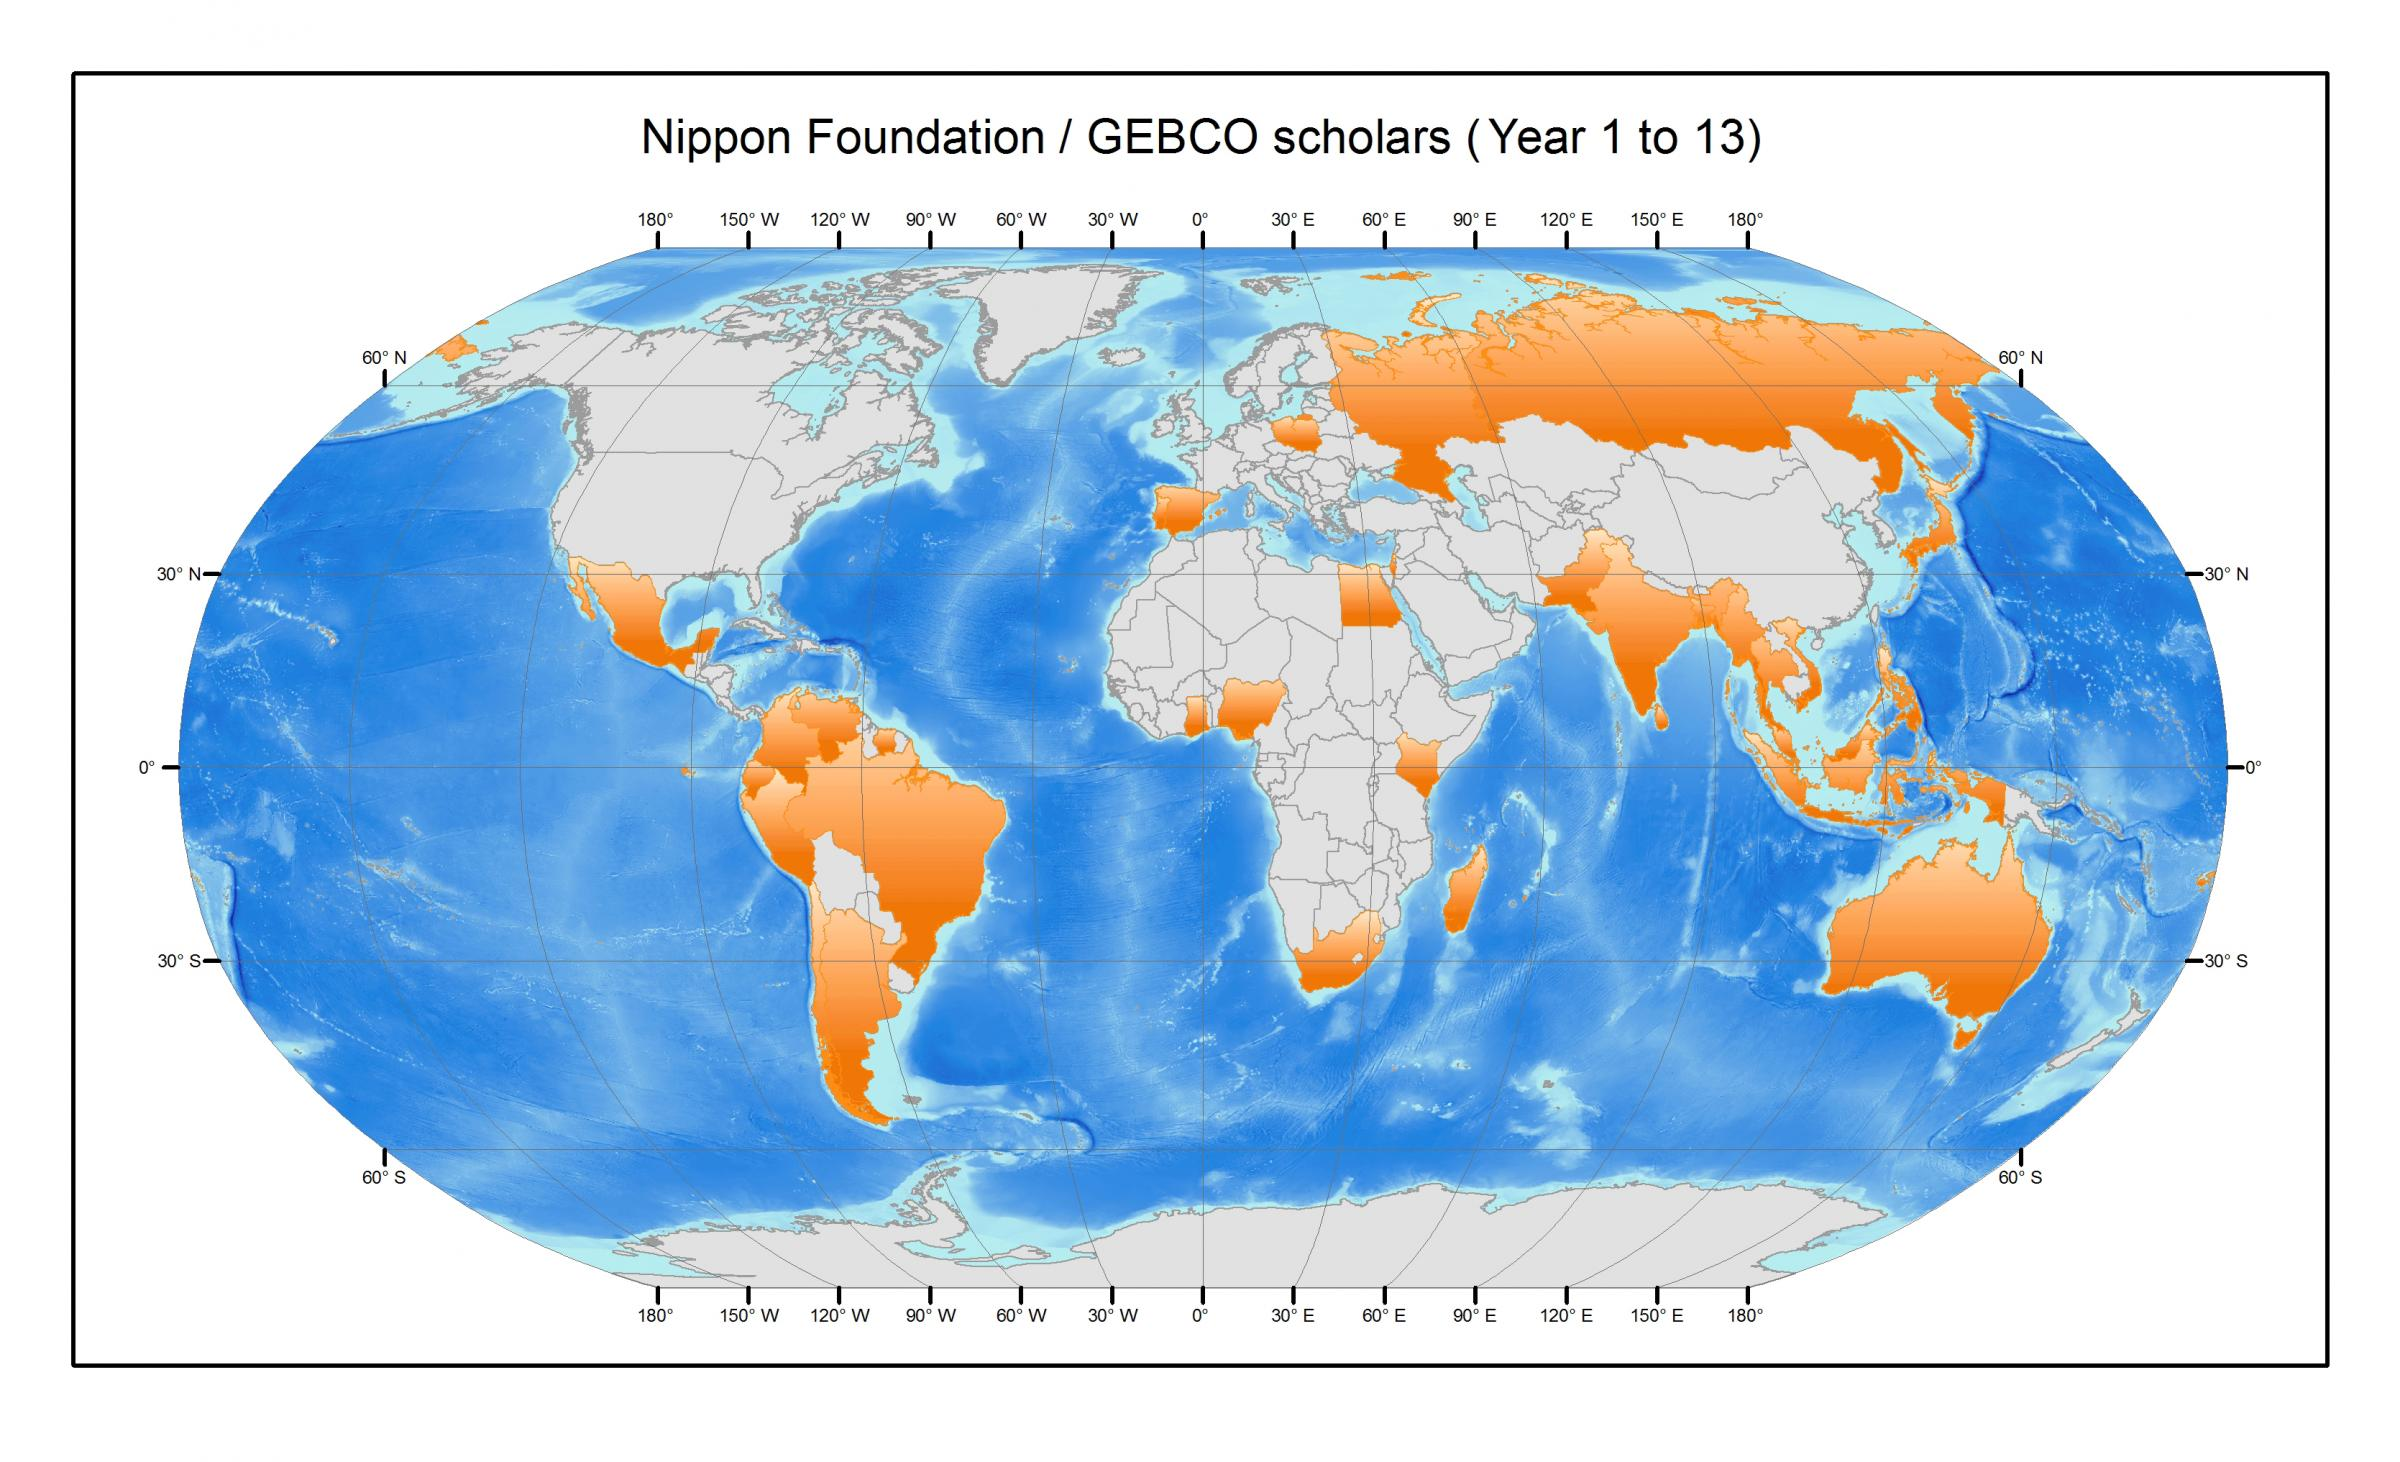 World map showing countries of GEBCO scholars in orange.